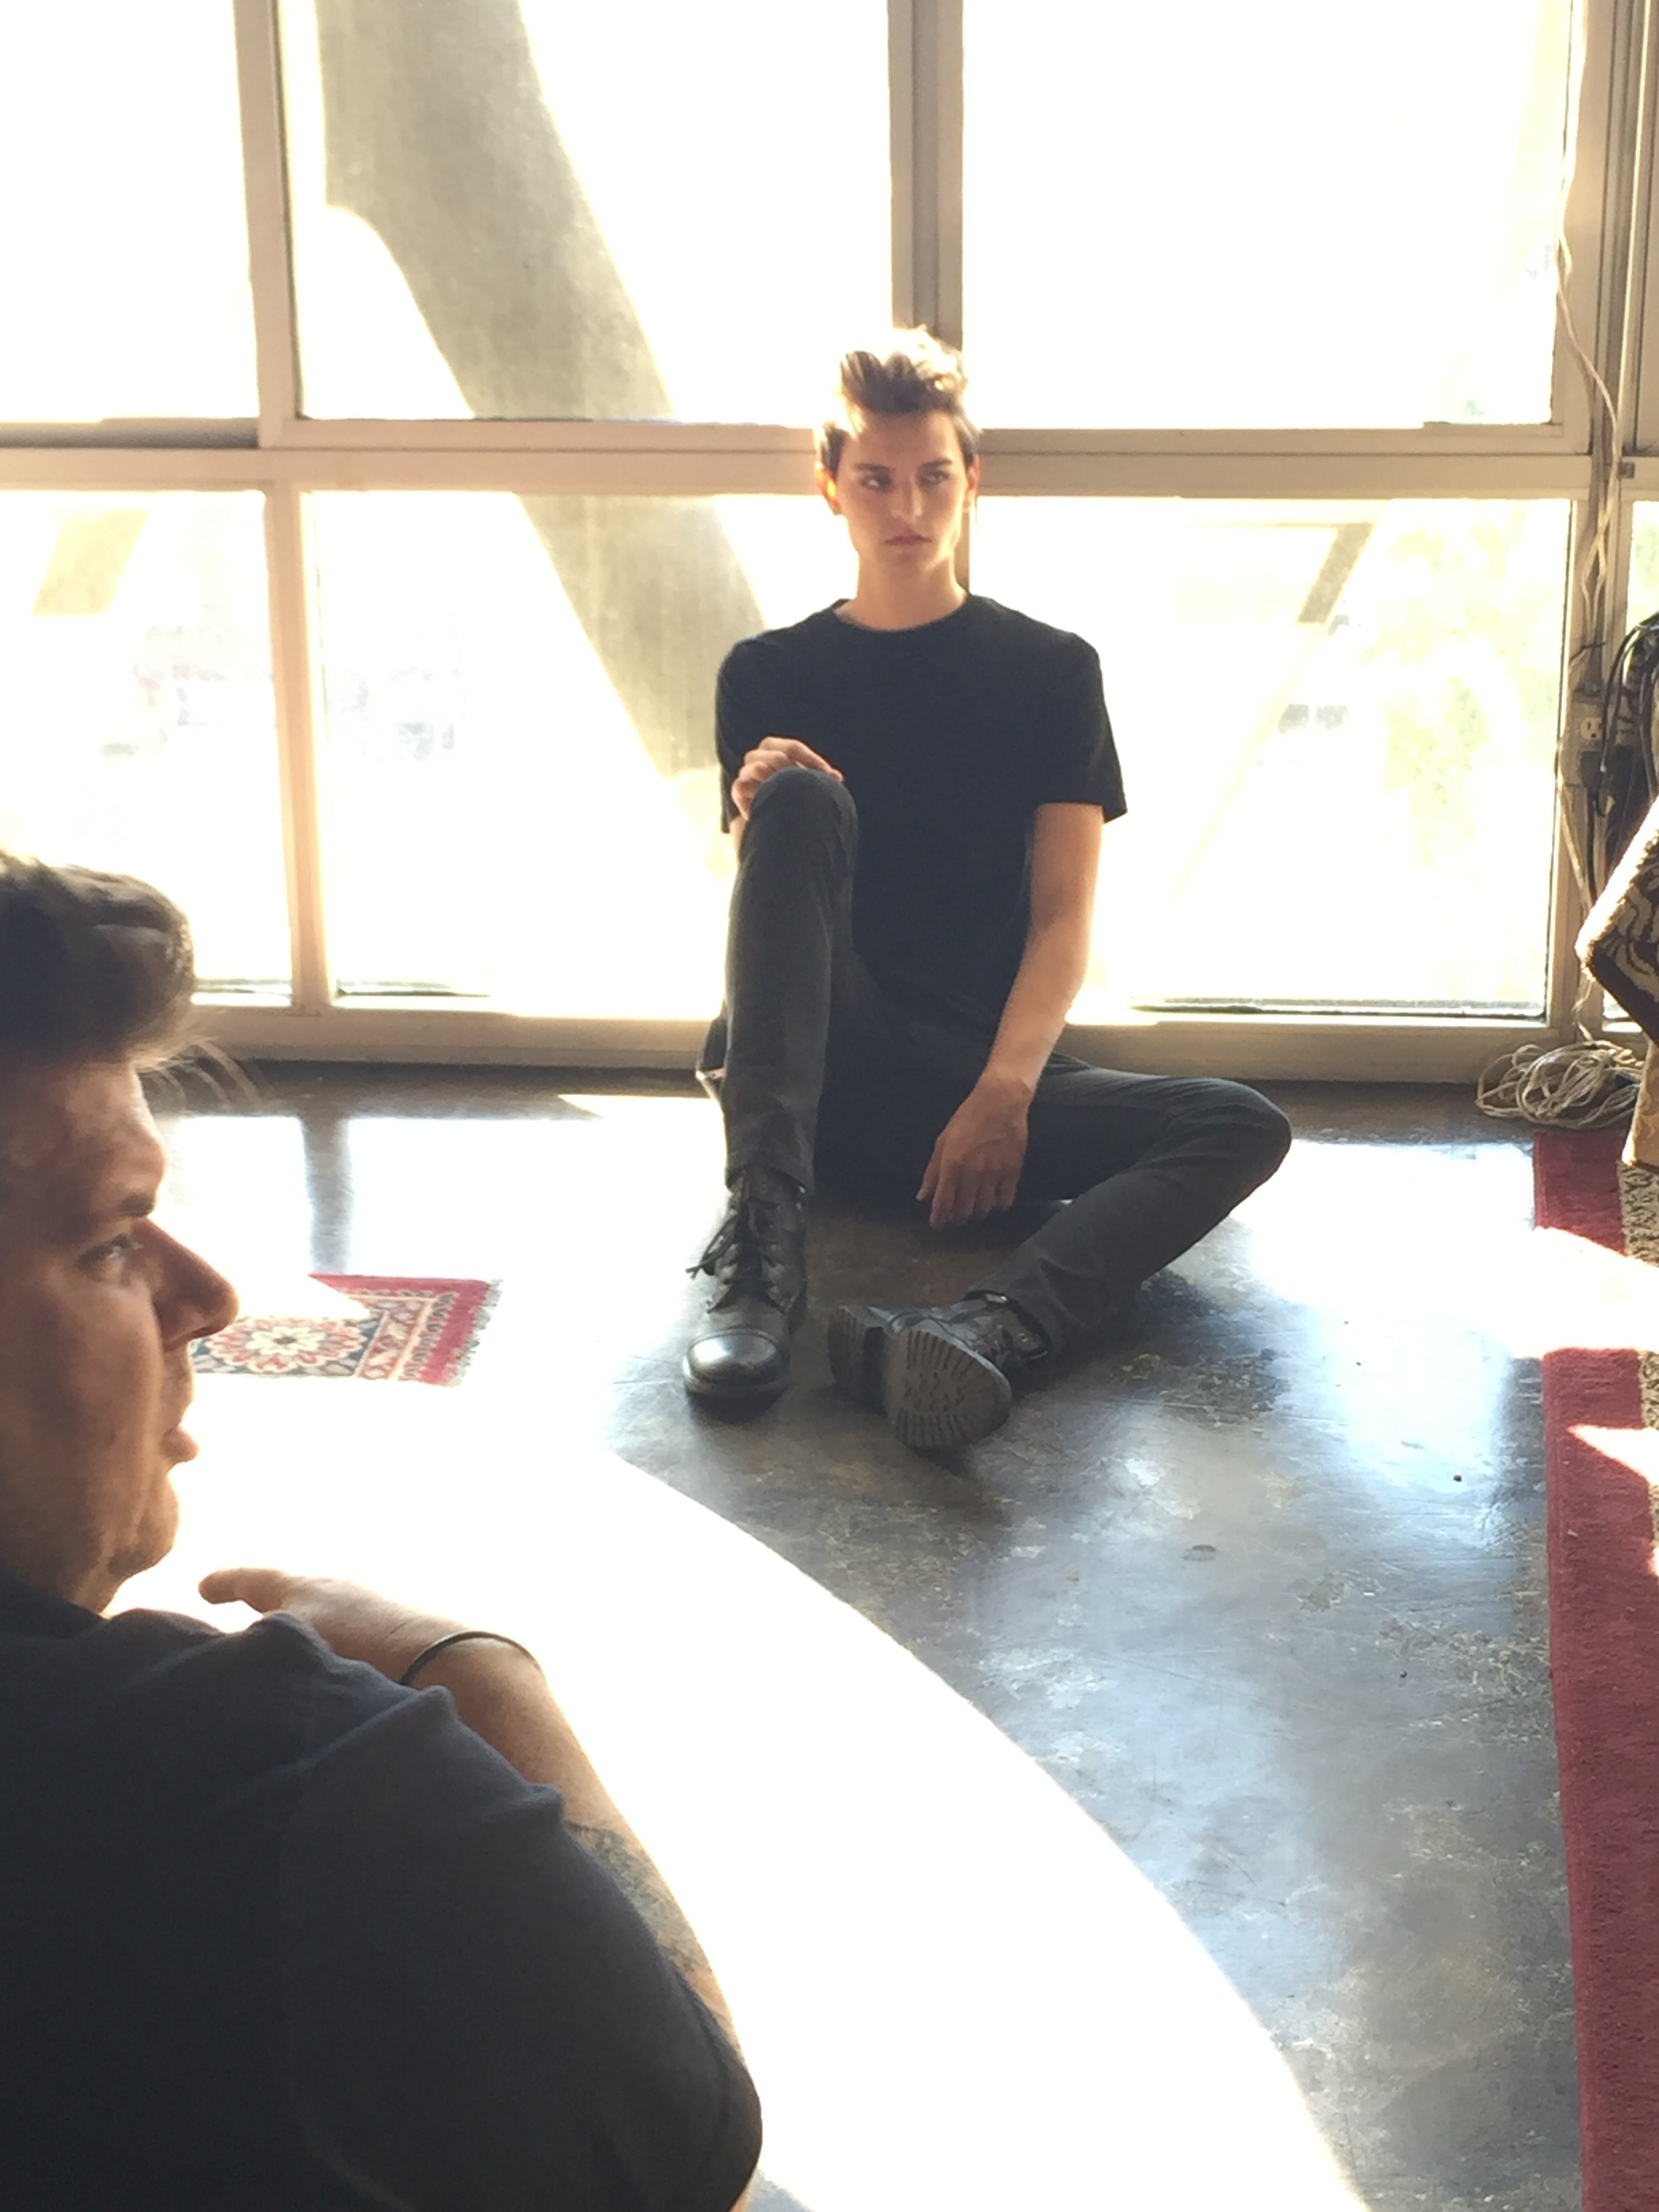 Behind the Scenes on L.A. shoot